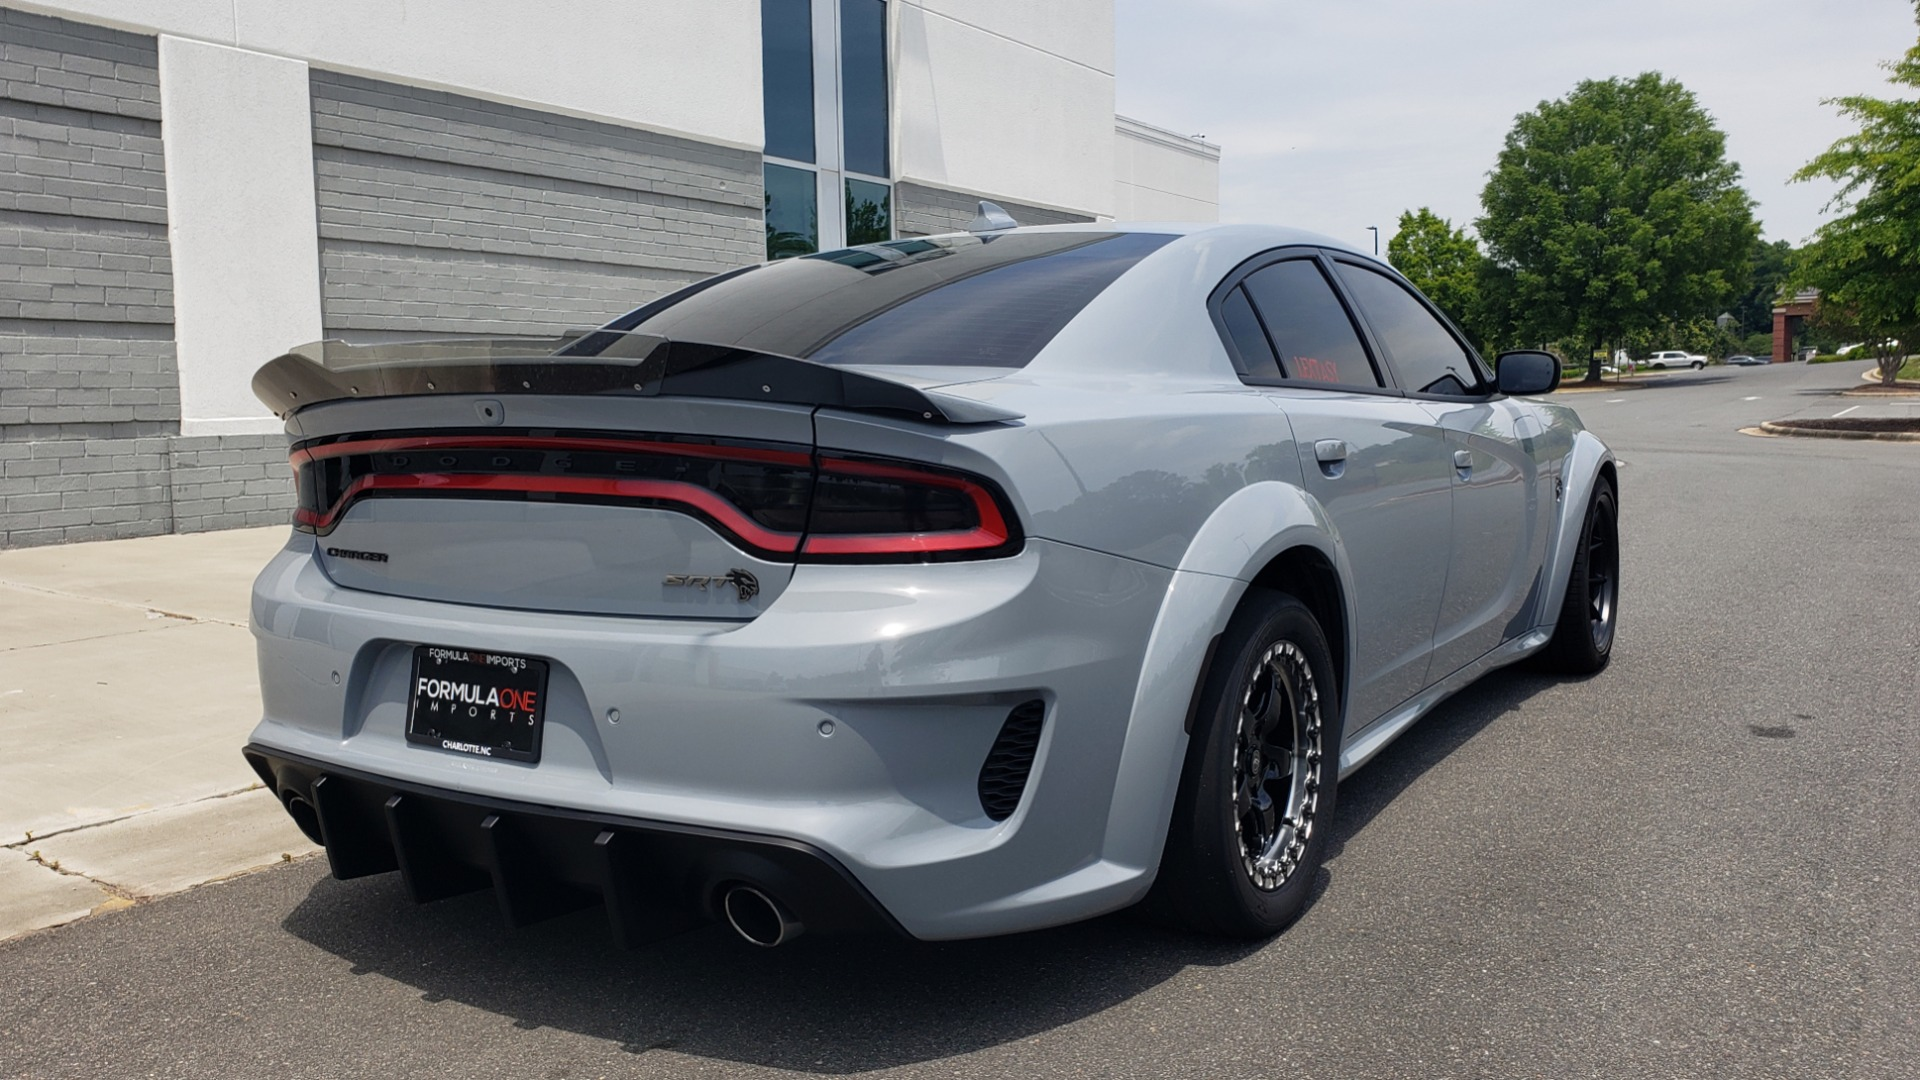 Used 2021 Dodge CHARGER SRT HELLCAT REDEYE WIDEBODY / CUSTOM TUNED 1100BHP for sale Sold at Formula Imports in Charlotte NC 28227 6